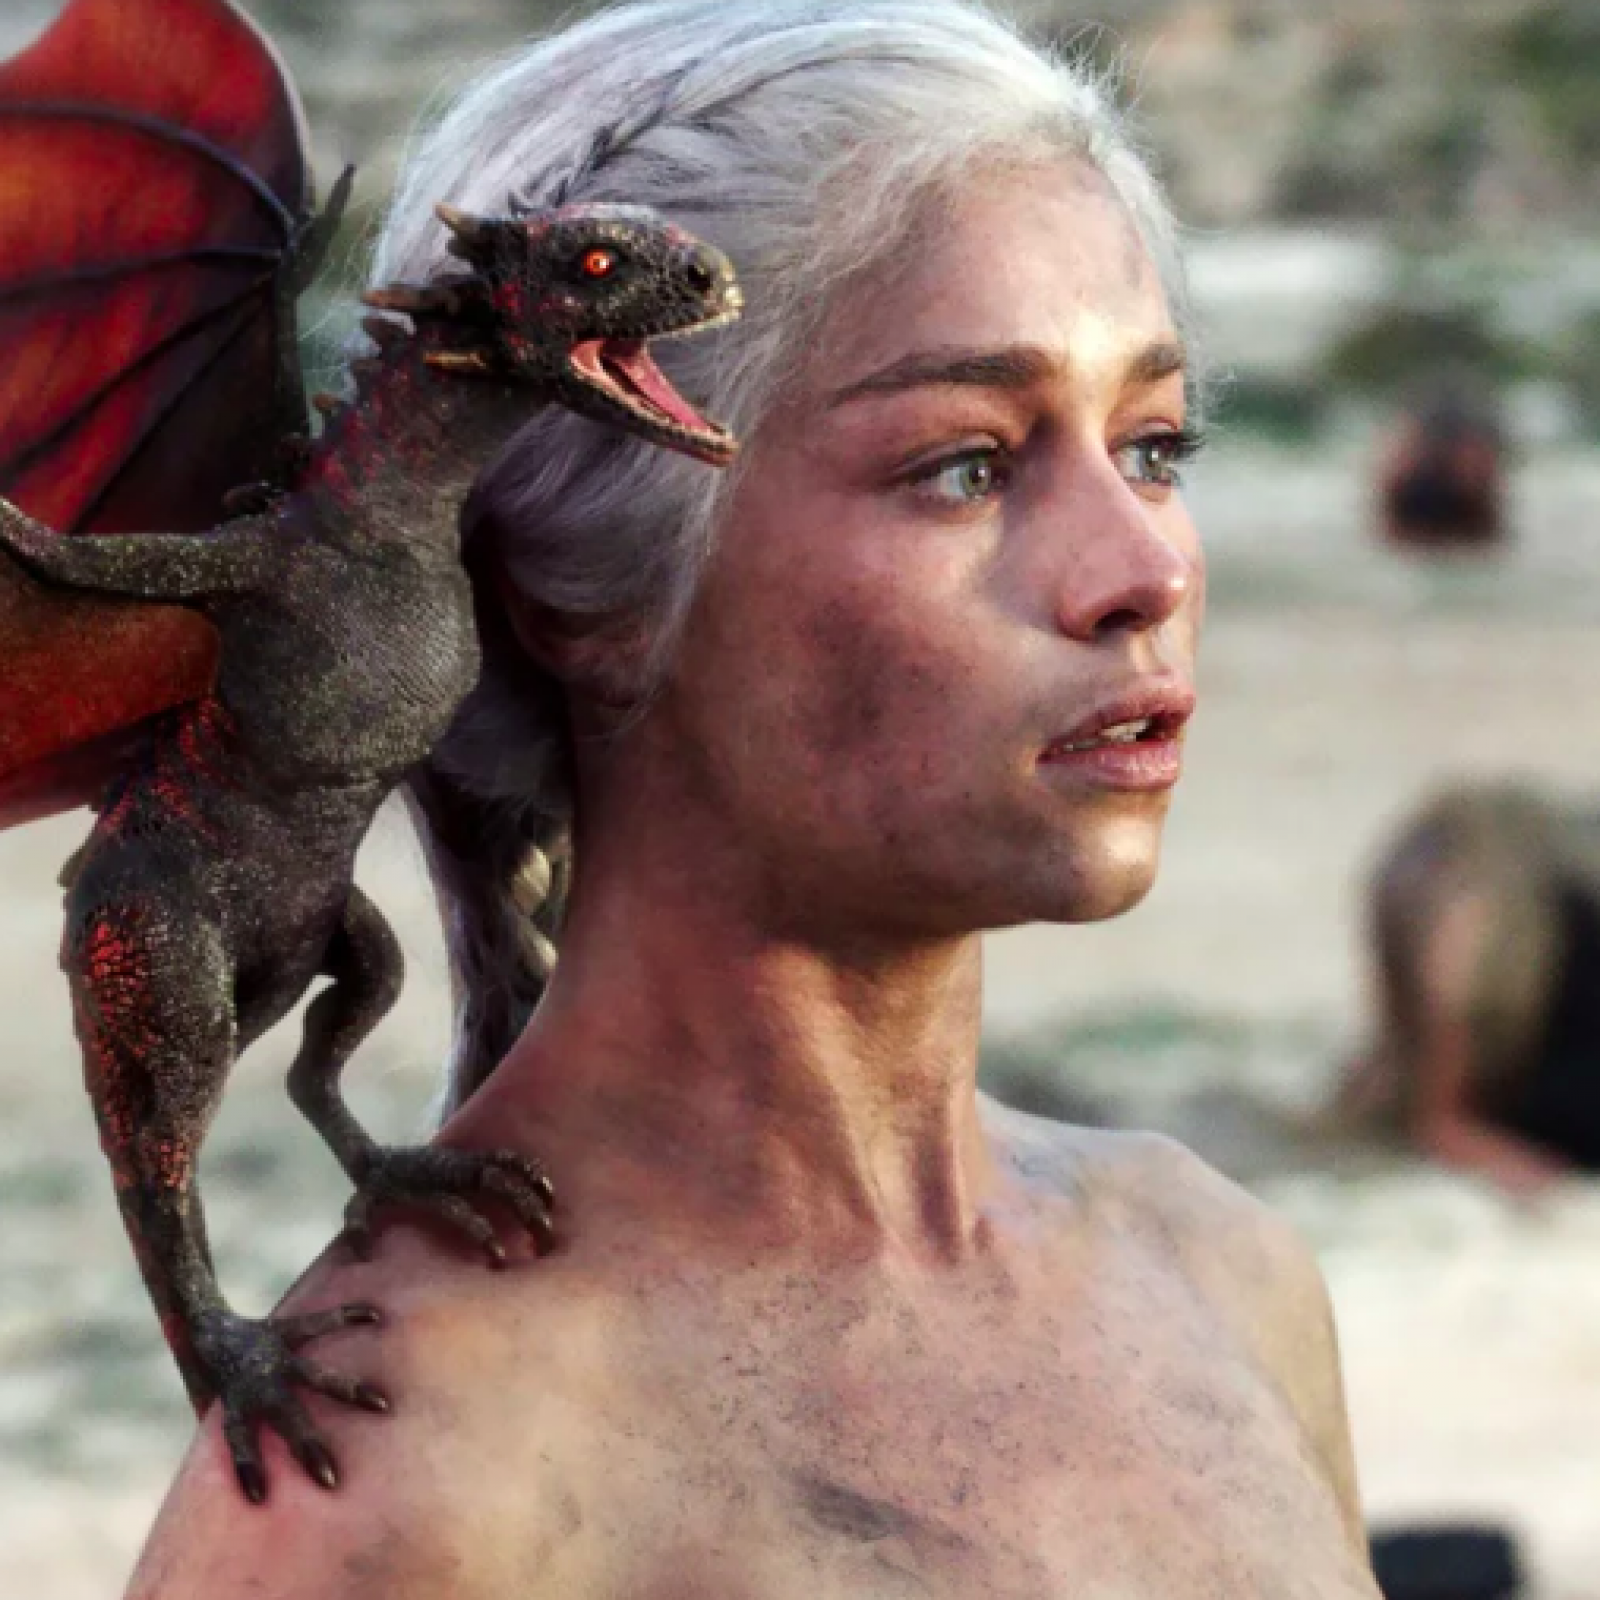 Where Did Drogon Take Daenerys? How the Dragon Queen Could